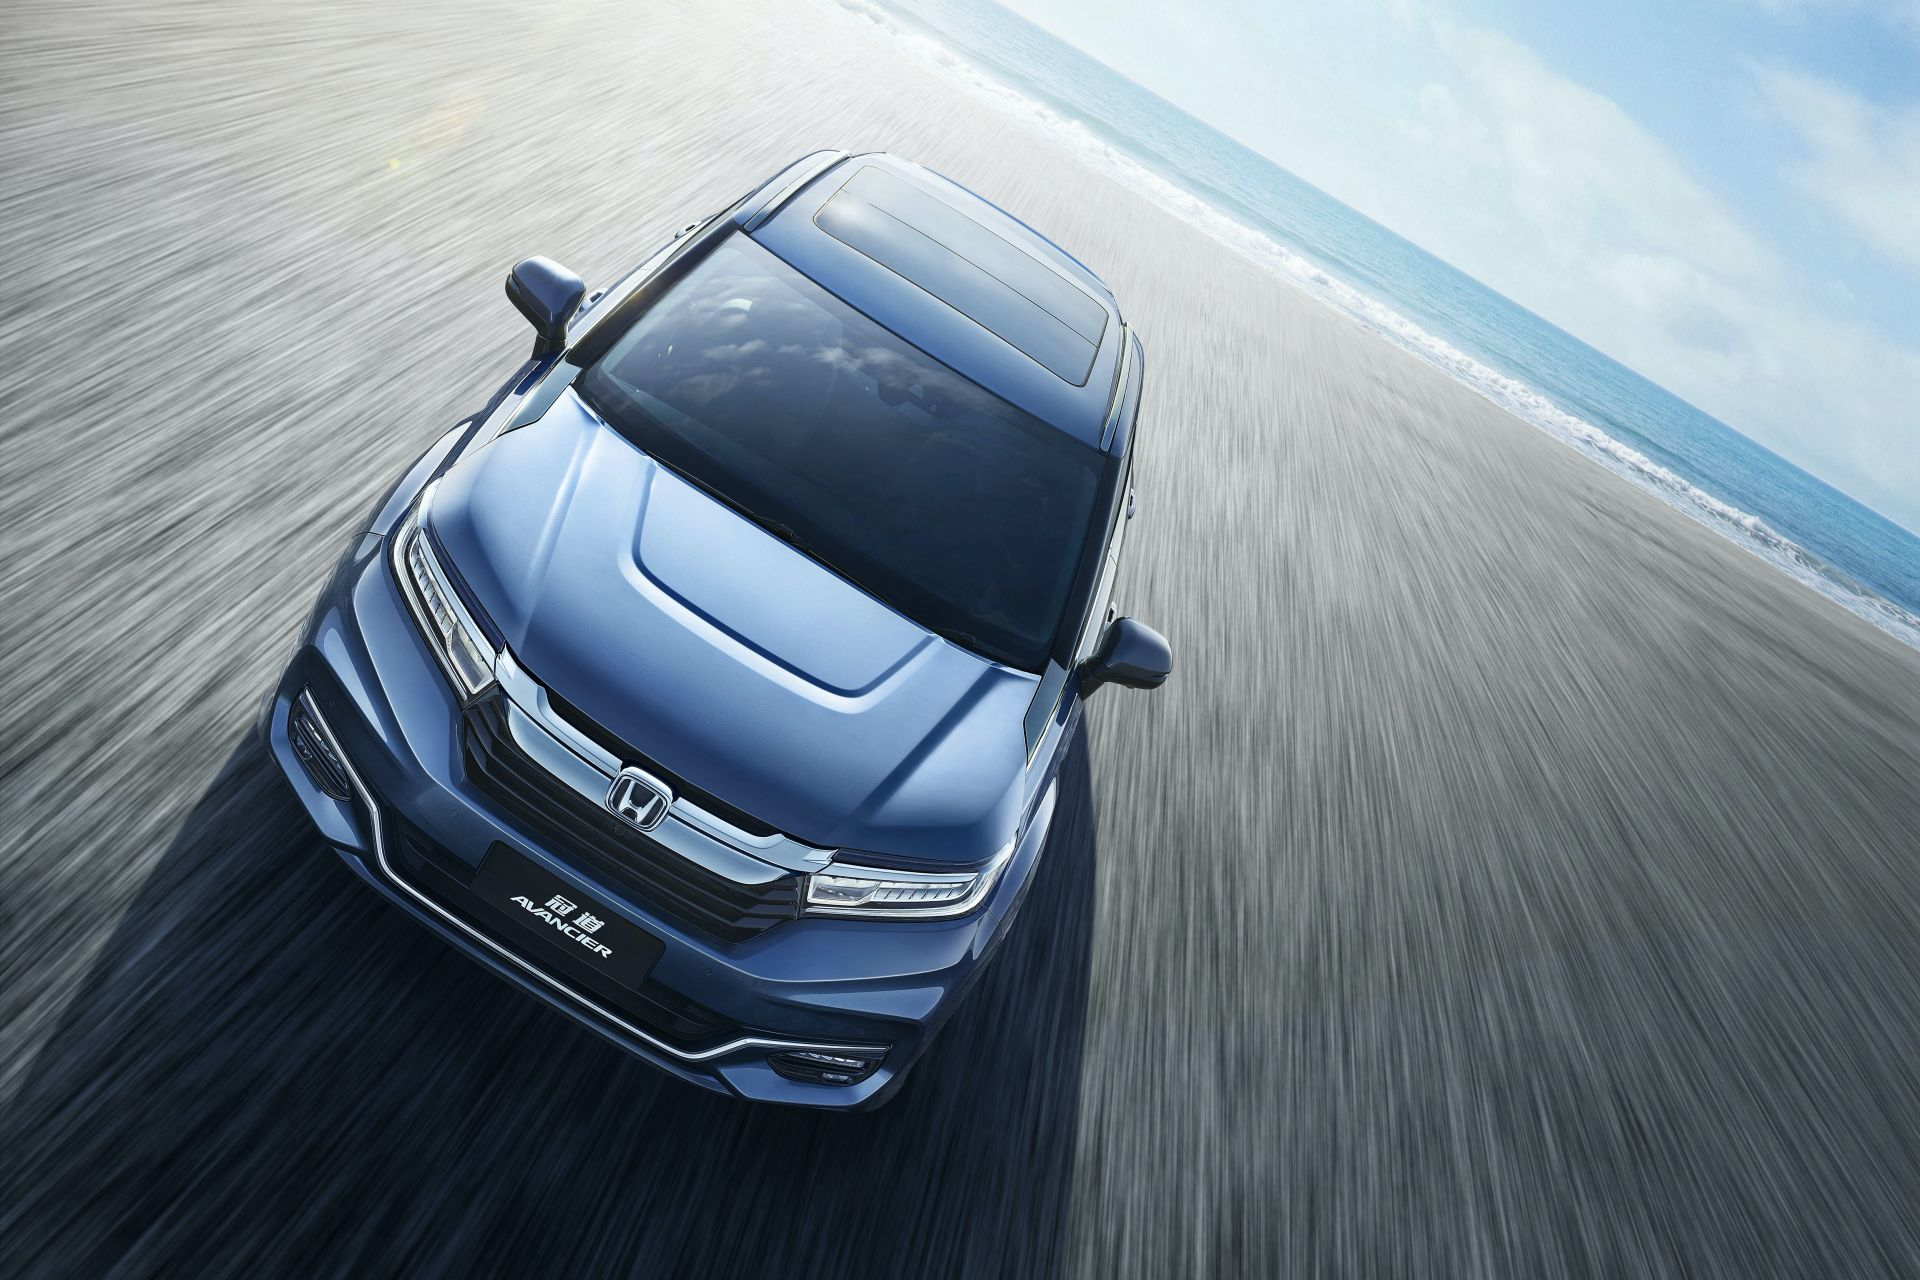 Honda-Avancier-facelift-2020-2